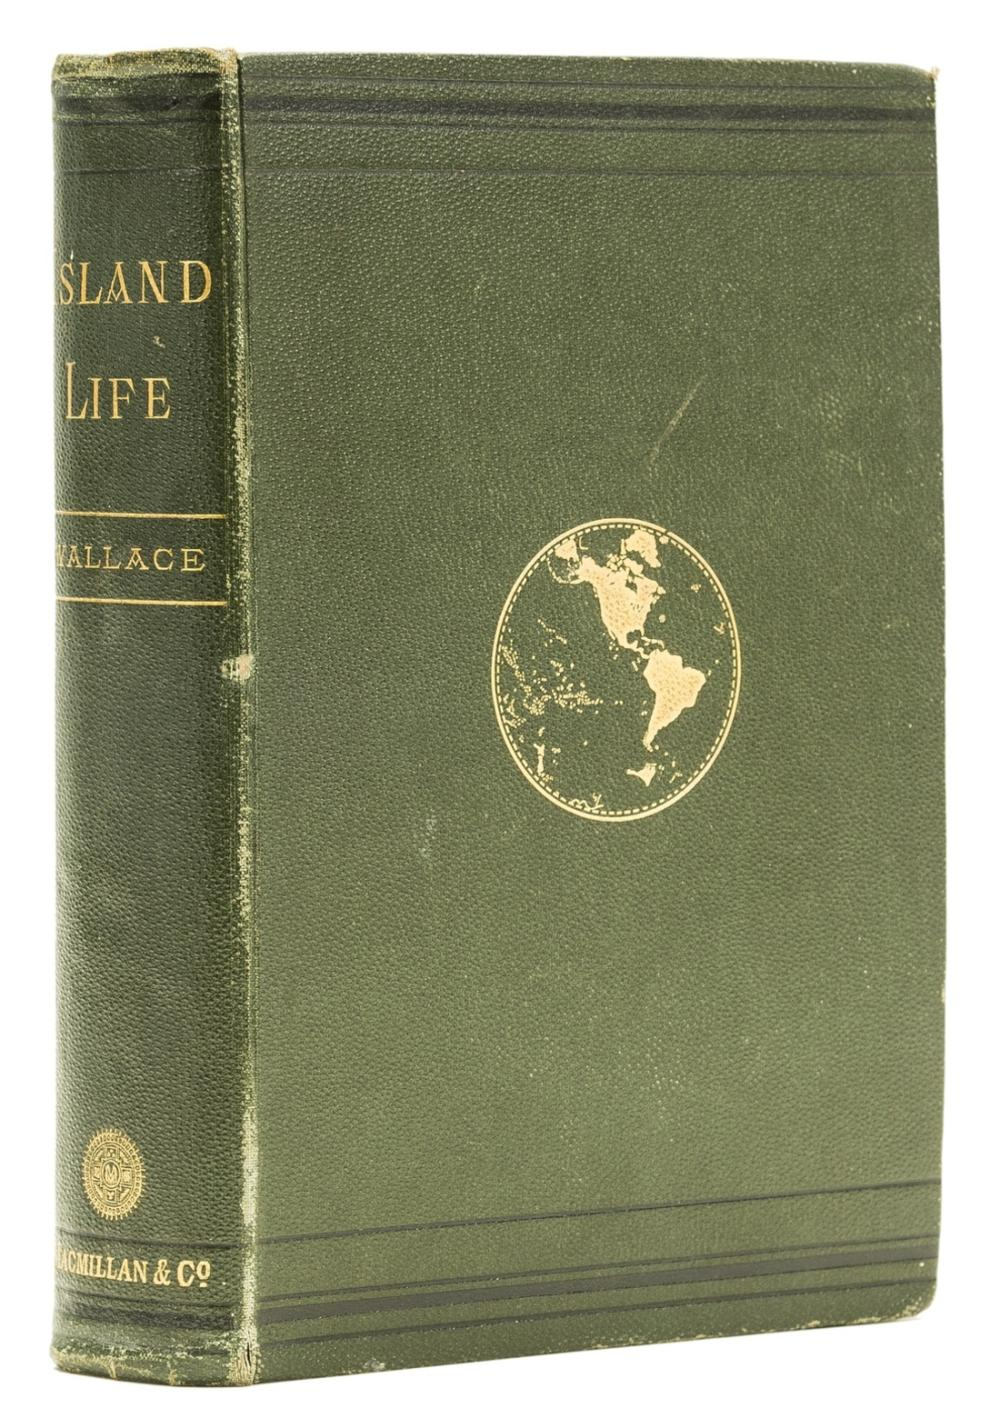 Wallace (Alfred Russel) Island Life: or, the Phenomena and Causes of Insular Faunas and Floras, first edition, 3 maps, one hand-coloured, original cloth, 1880.